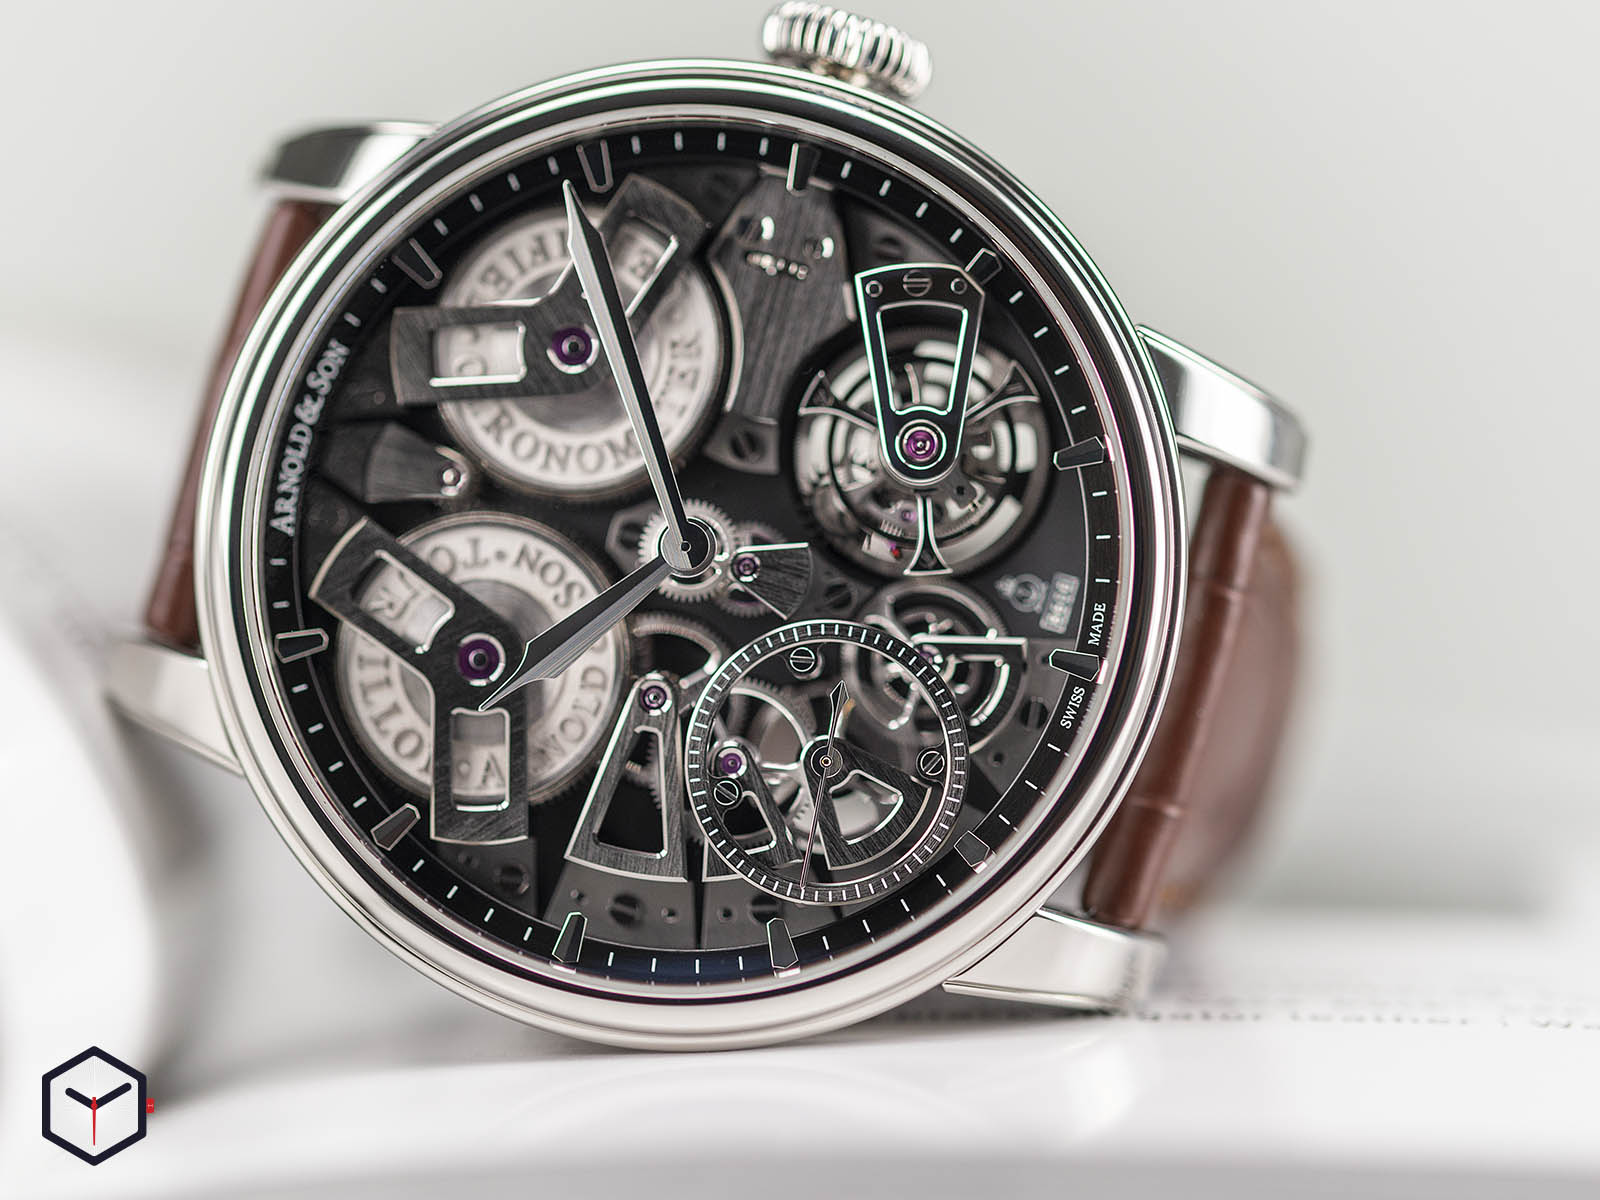 1etas-b01a-c113s-arnold-son-tourbillon-chronometer-no-36-tribute-edition-steel-3.jpg